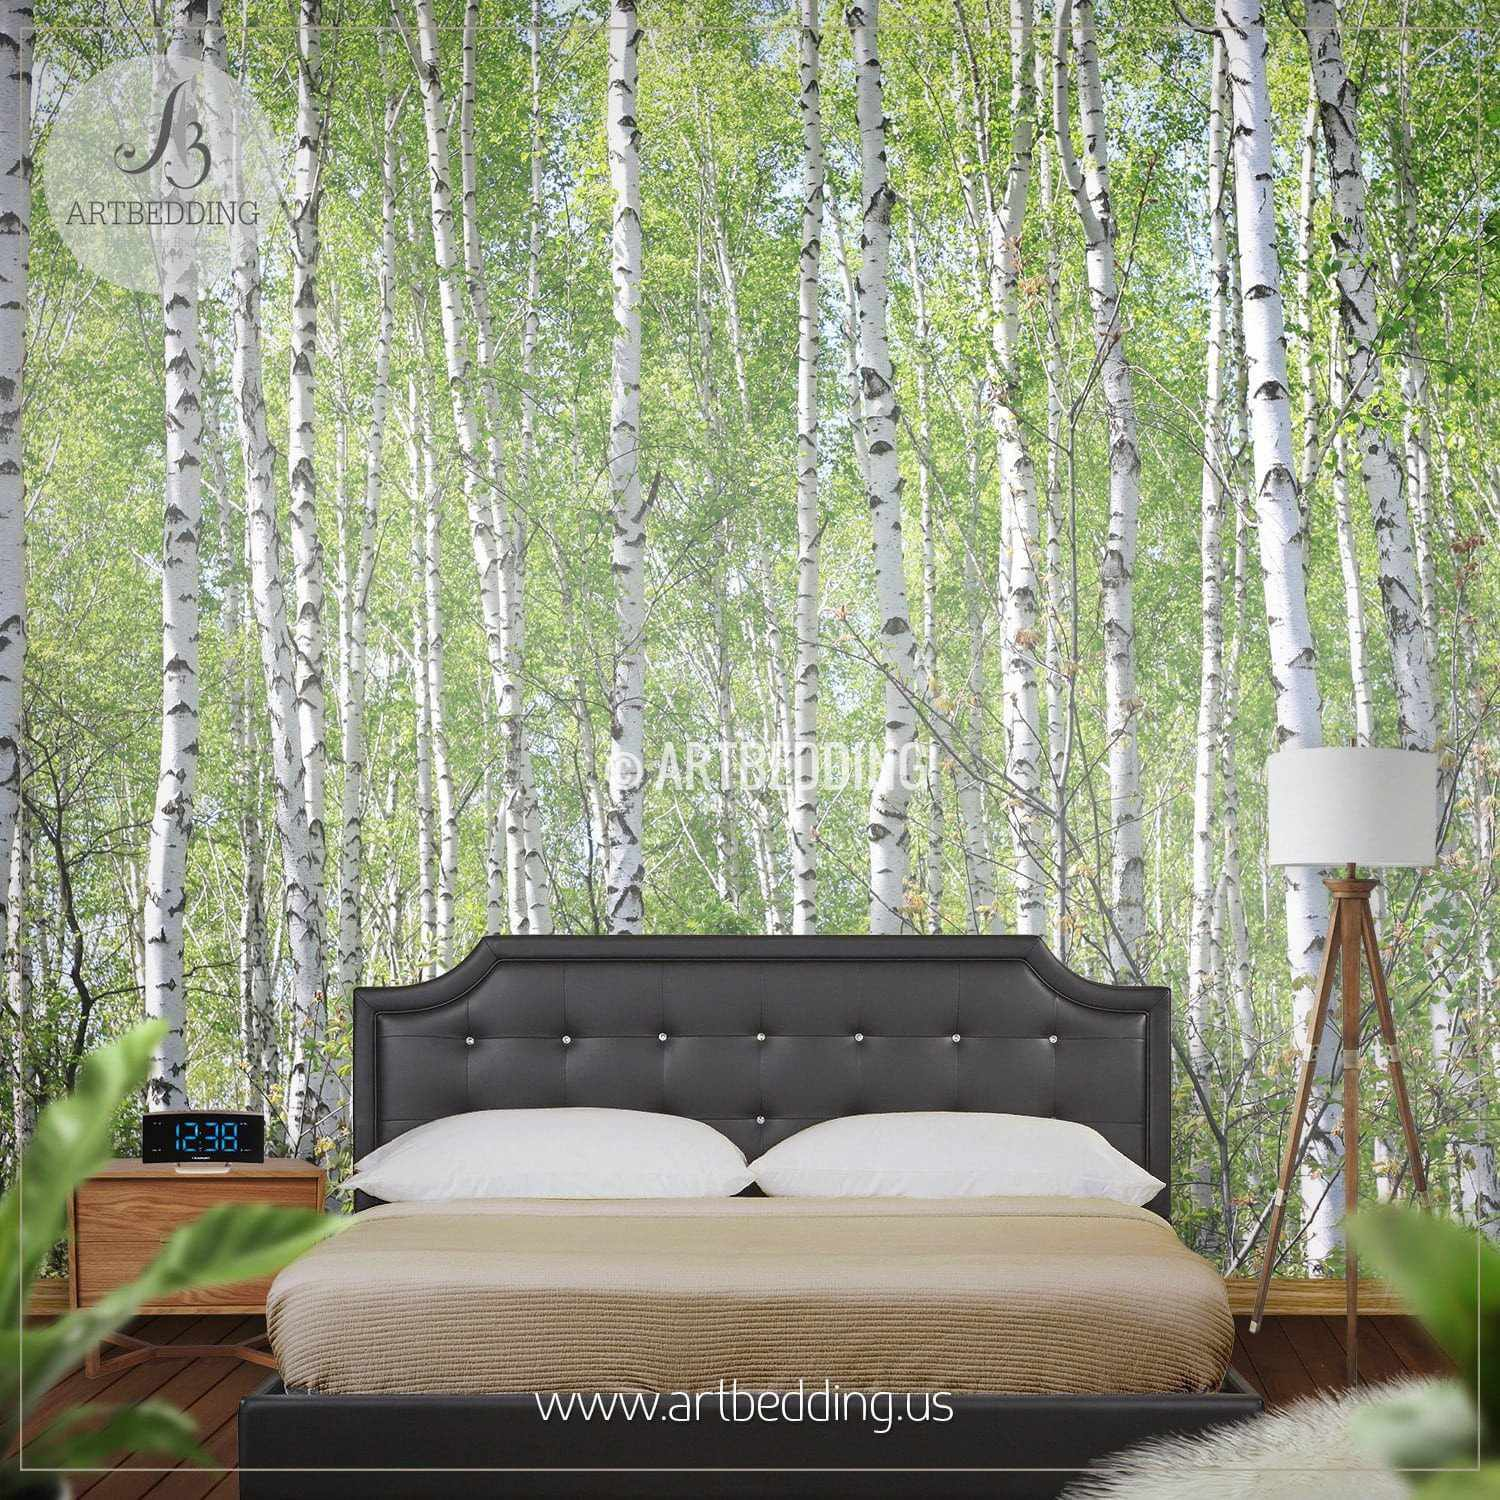 Birches in Forest photo wall mural ARTBEDDING